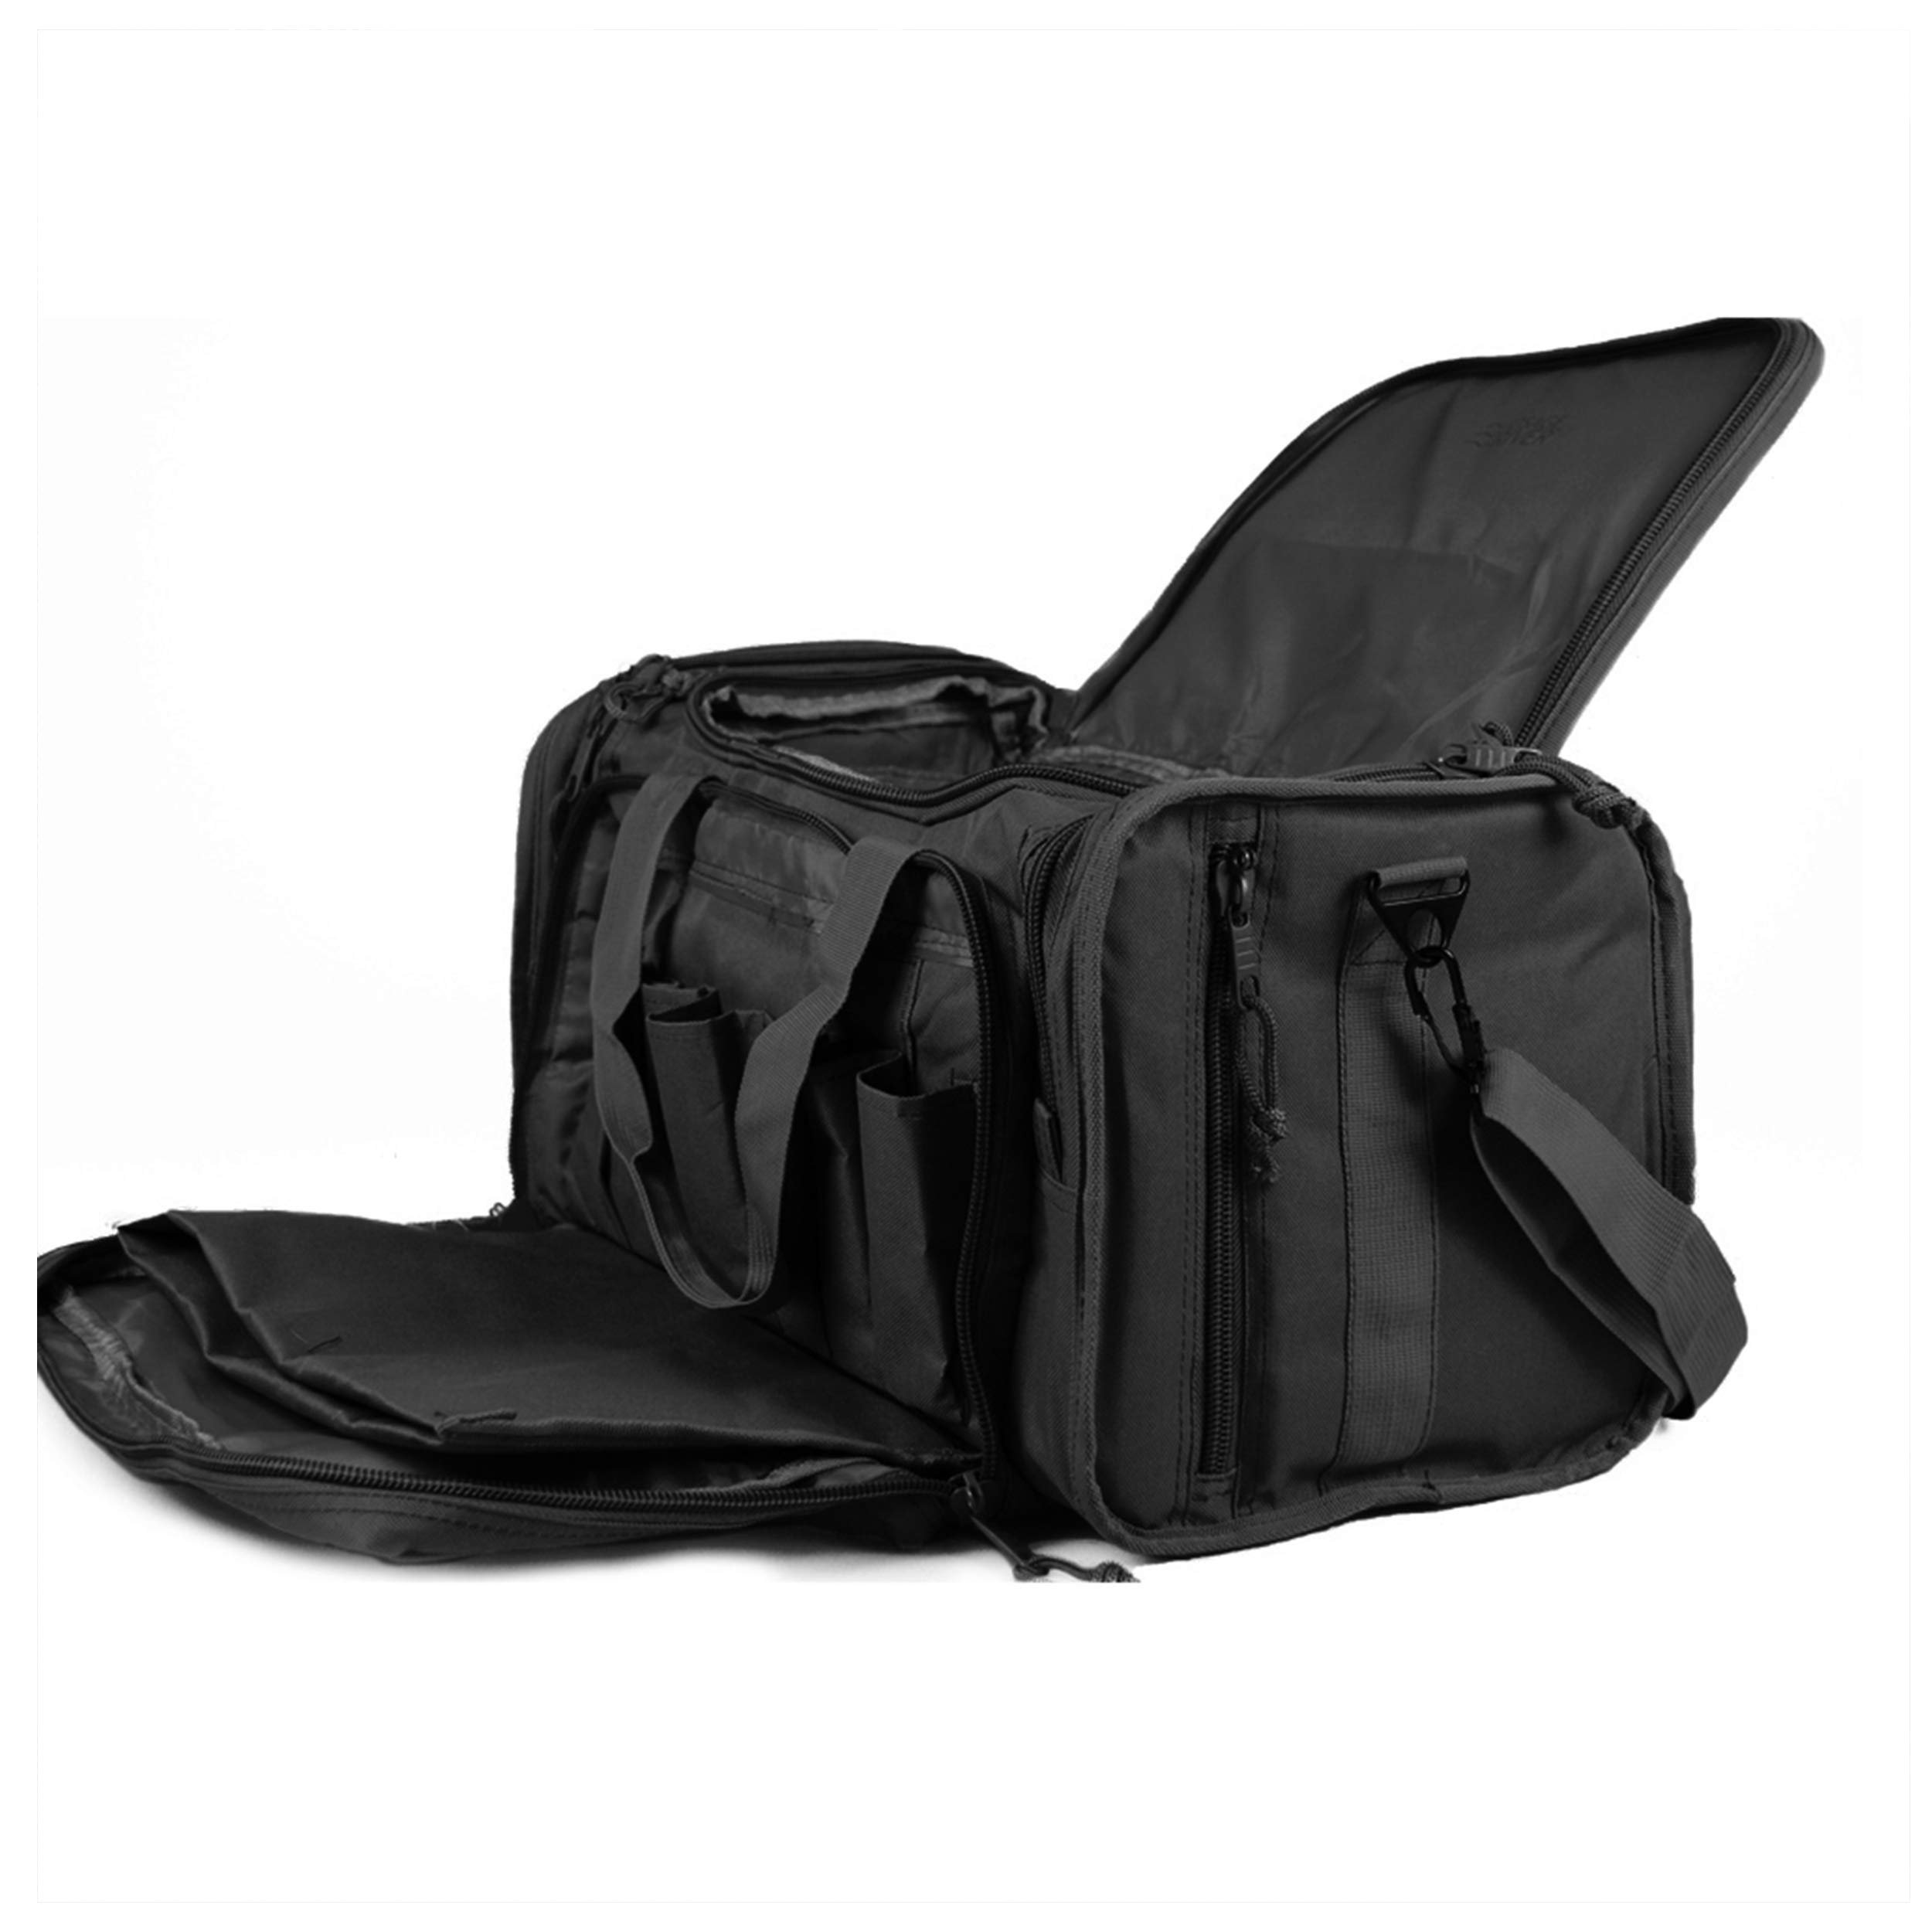 Osage River Tactical Shooting Gun Range Bag (Black, Standard (18 x 13 x 10) Inches) by Osage River